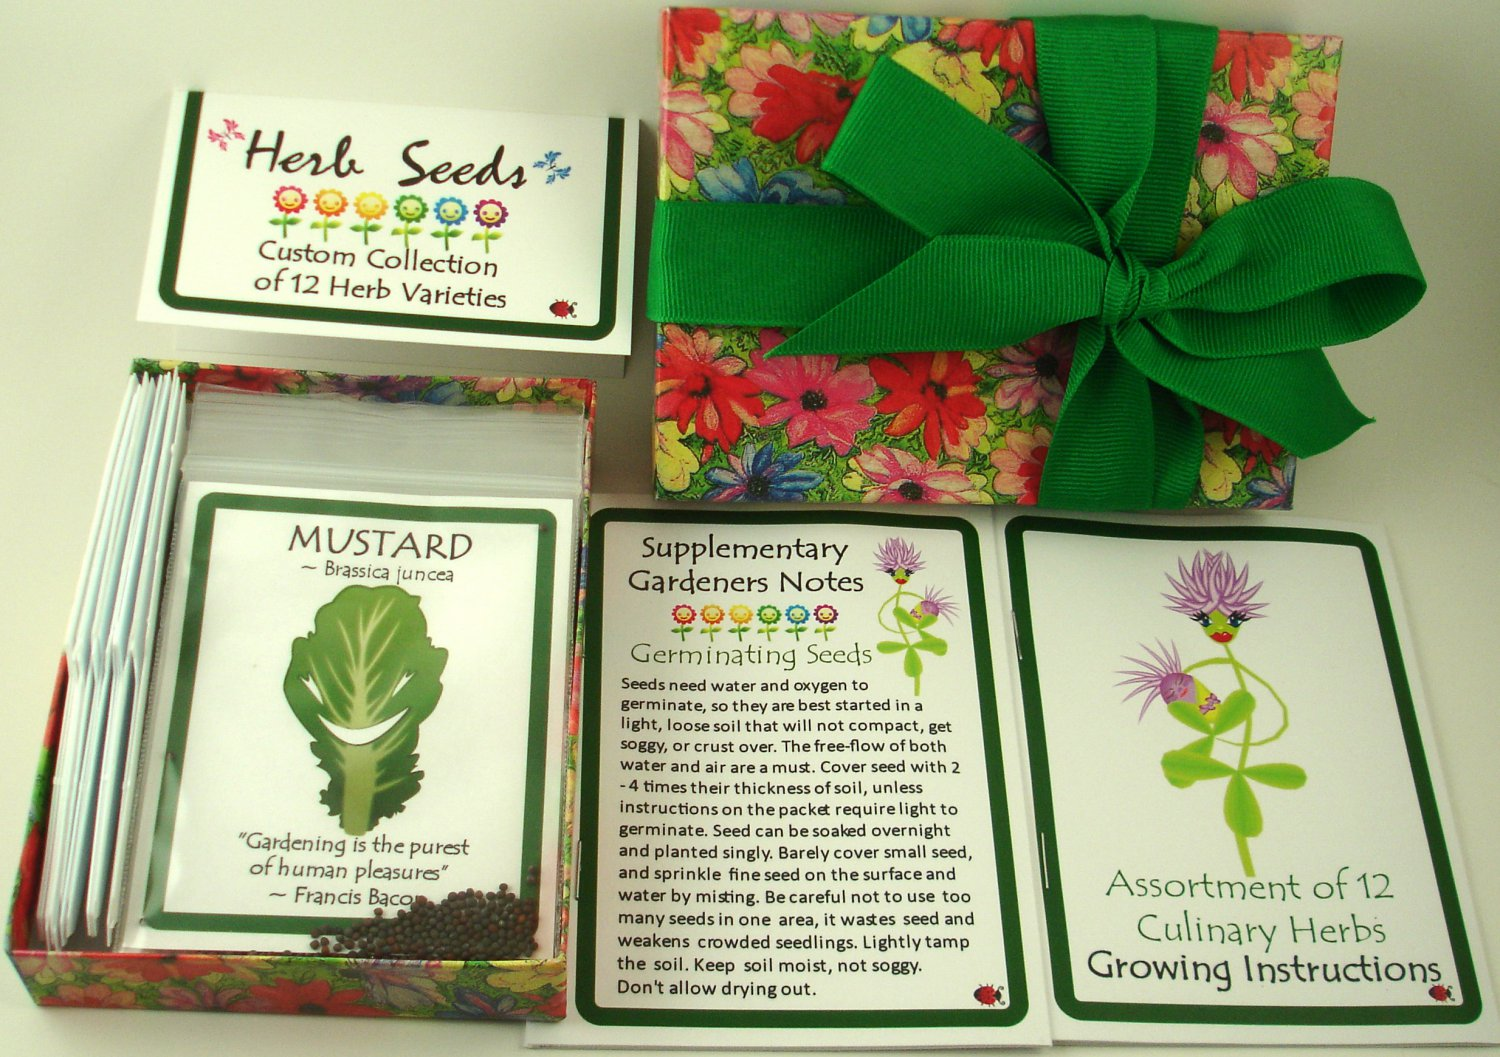 Gift Box Assortment of 12 Culinary Herb Seeds